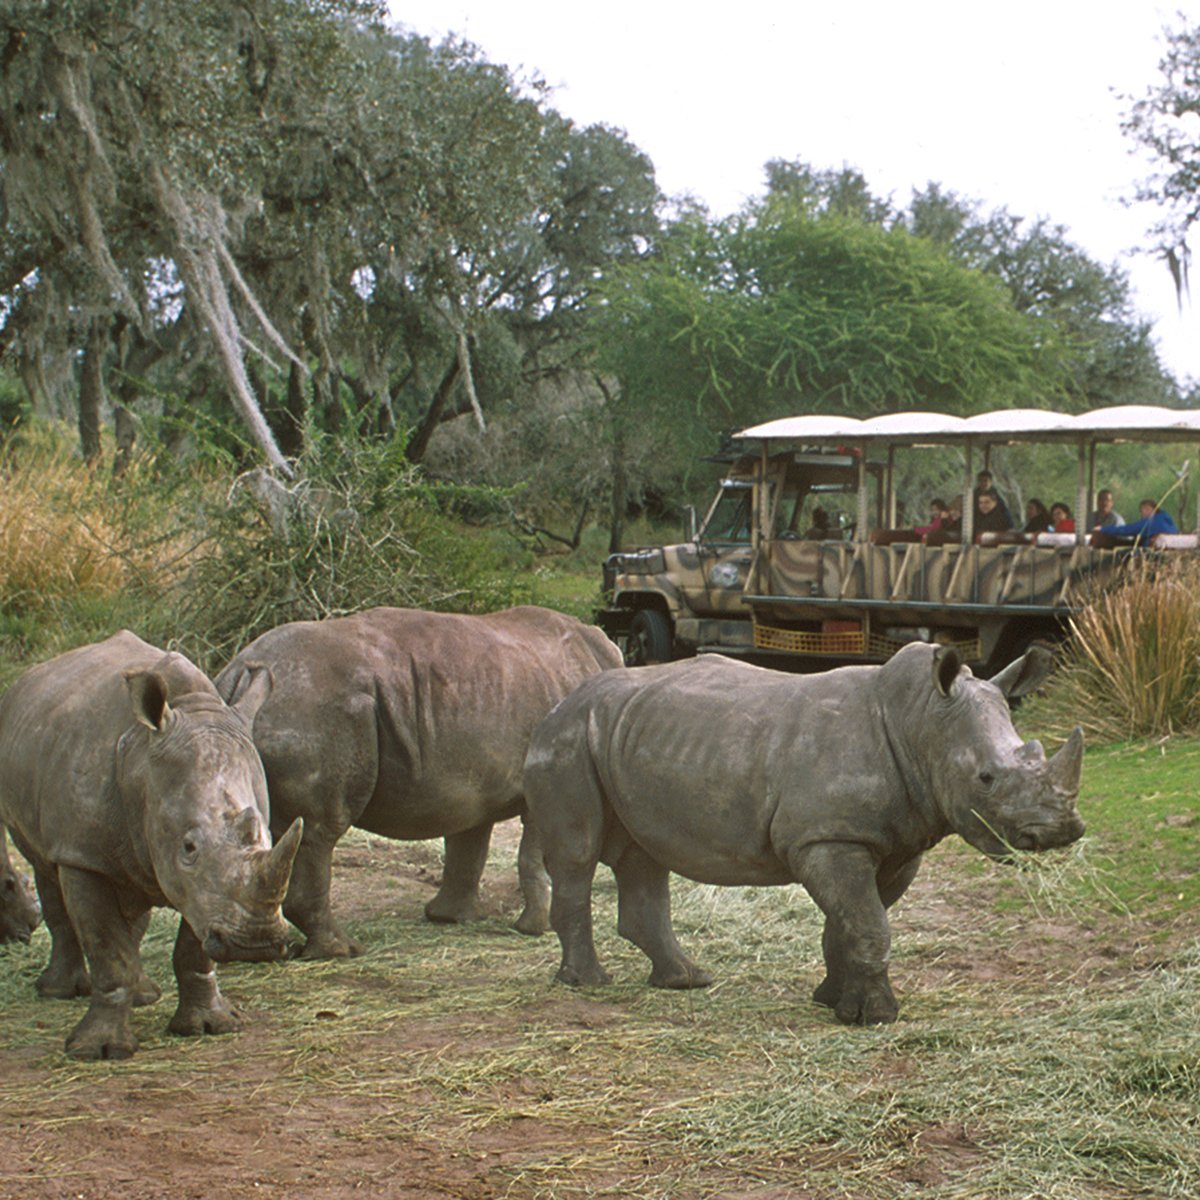 Slide 16 of 19: No, this isn't Africa. It's Disney World's Animal Kingdom park, which opened on April 22, 1998. Its goal is to help guests learn about and better appreciate all kinds of animals—like the rhinos seen here. Learn the real way Disney makes money—it's not their parks.